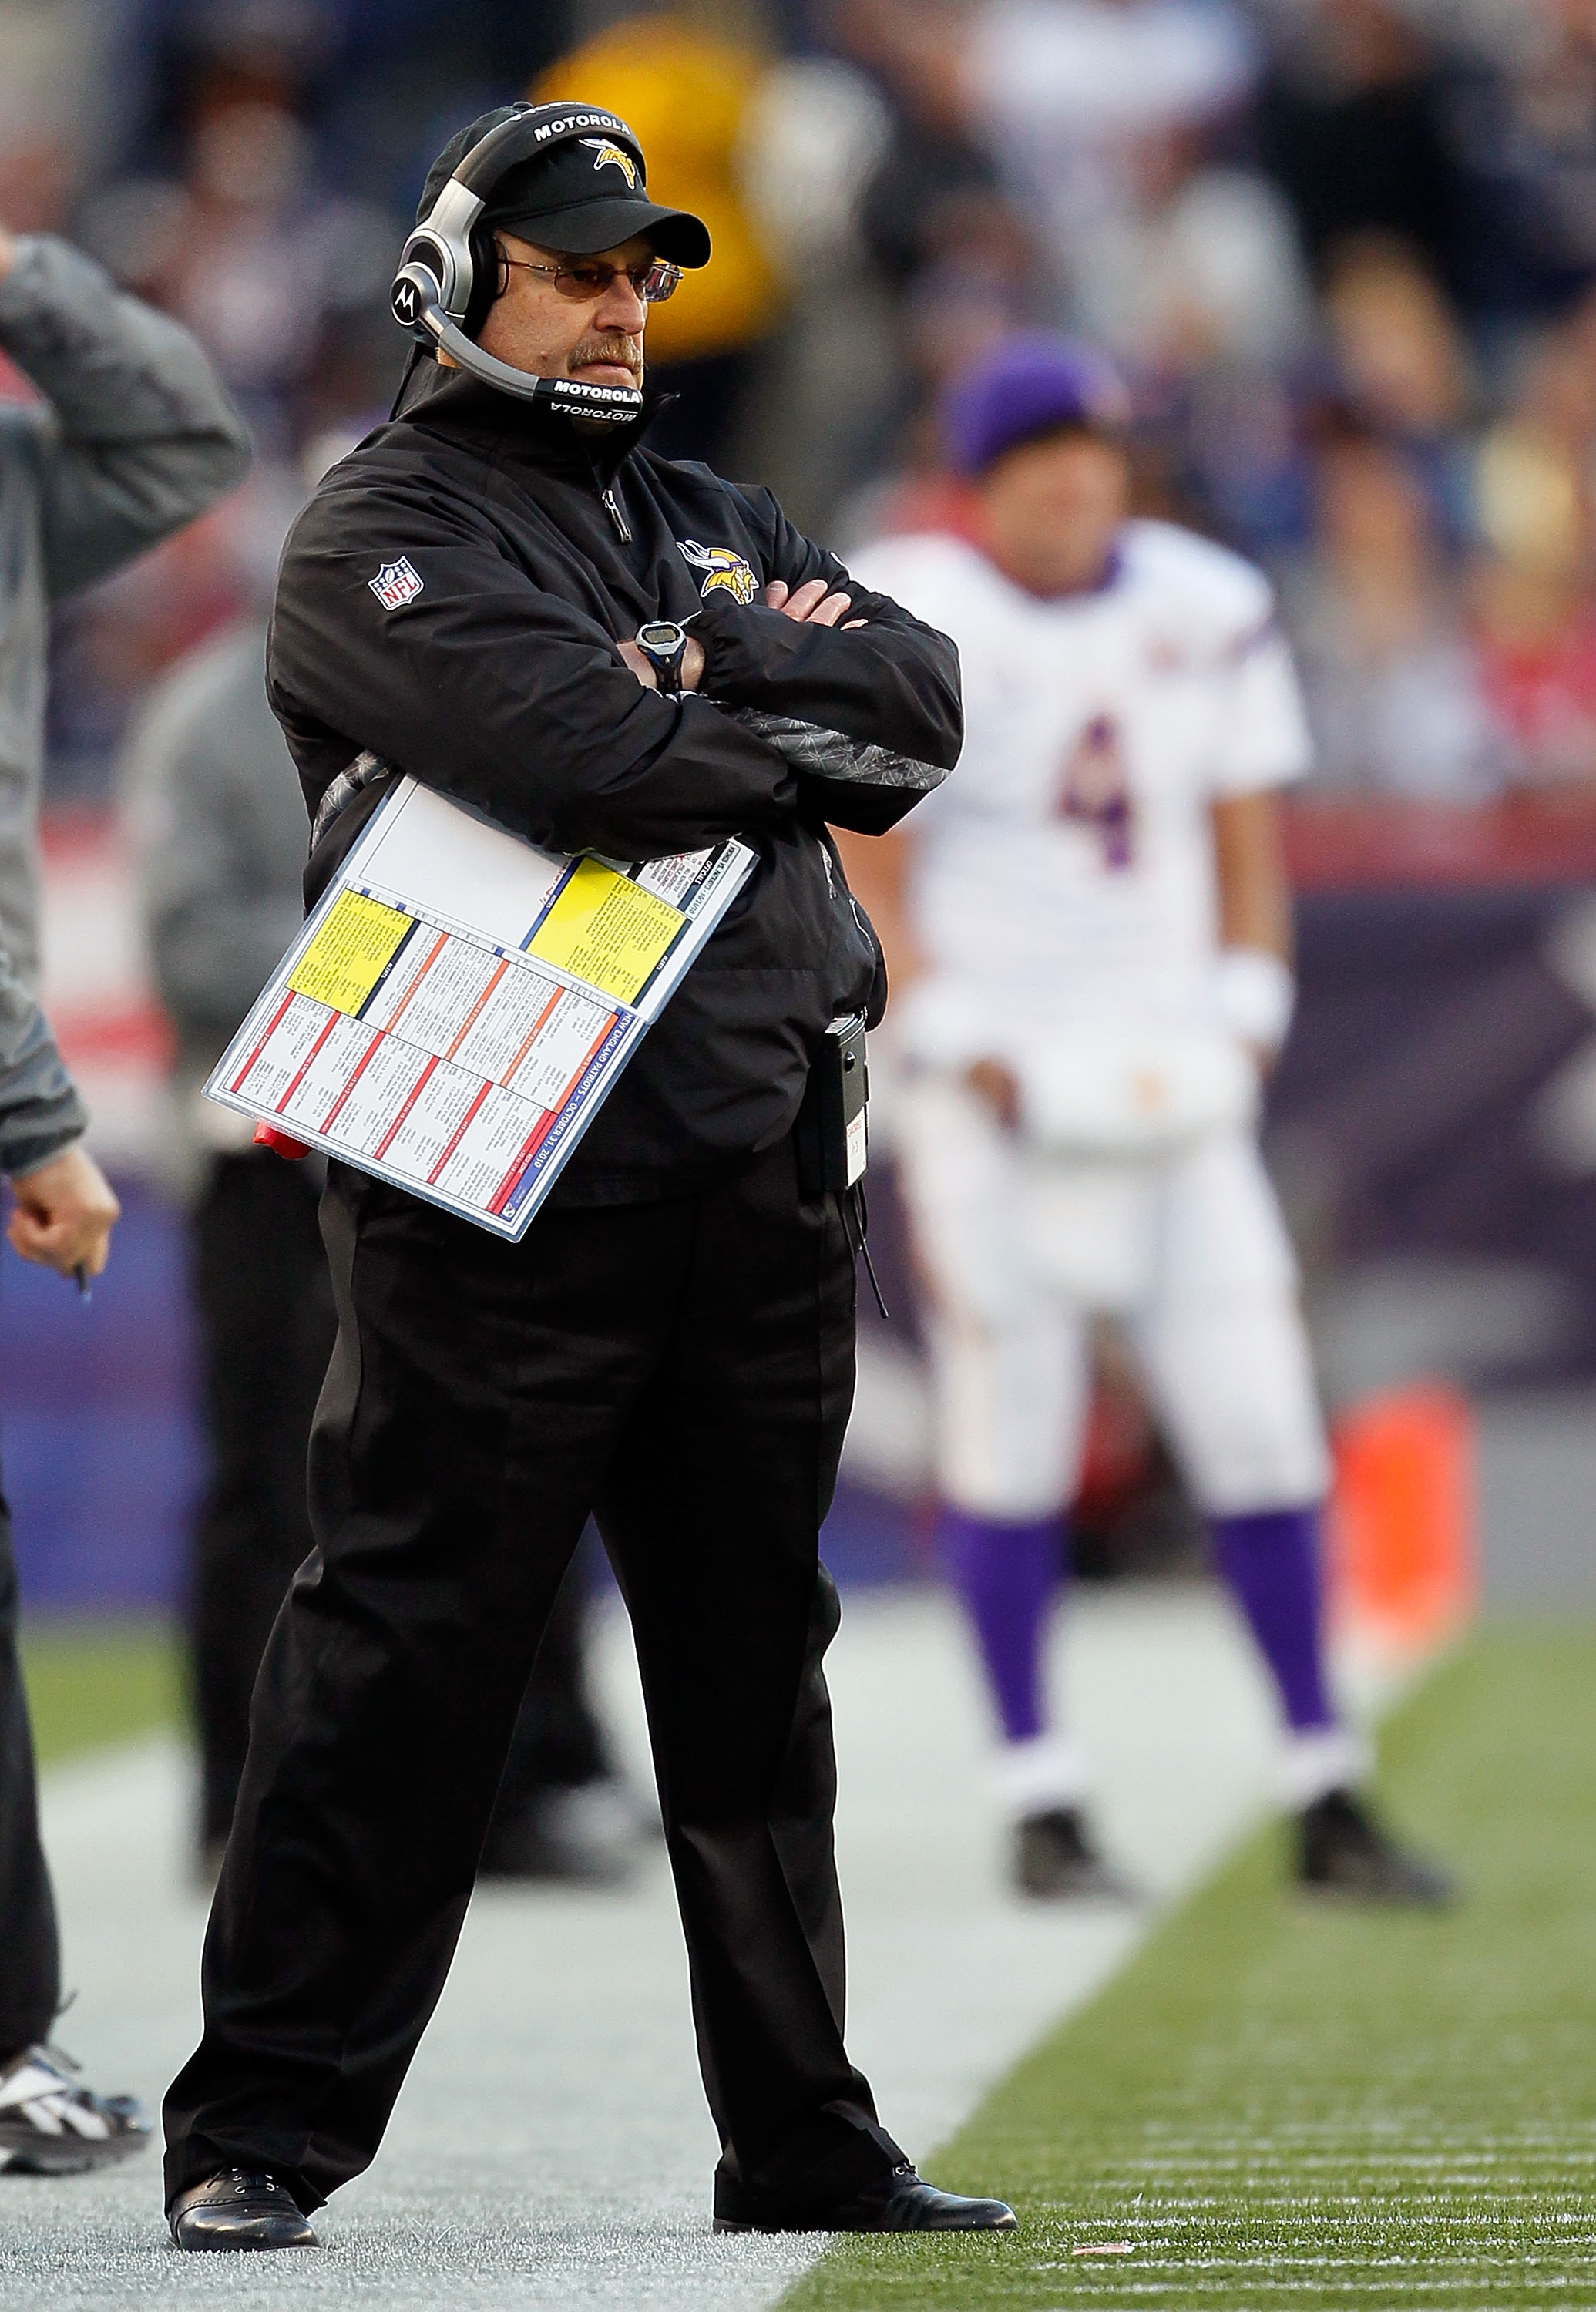 FOXBORO, MA - OCTOBER 31:  Coach Brad Childress and Brett Favre #4 of the Minnesota Vikings (rear) watch the action against the New England Patriots at Gillette Stadium on October 31, 2010 in Foxboro, Massachusetts. (Photo by Jim Rogash/Getty Images)